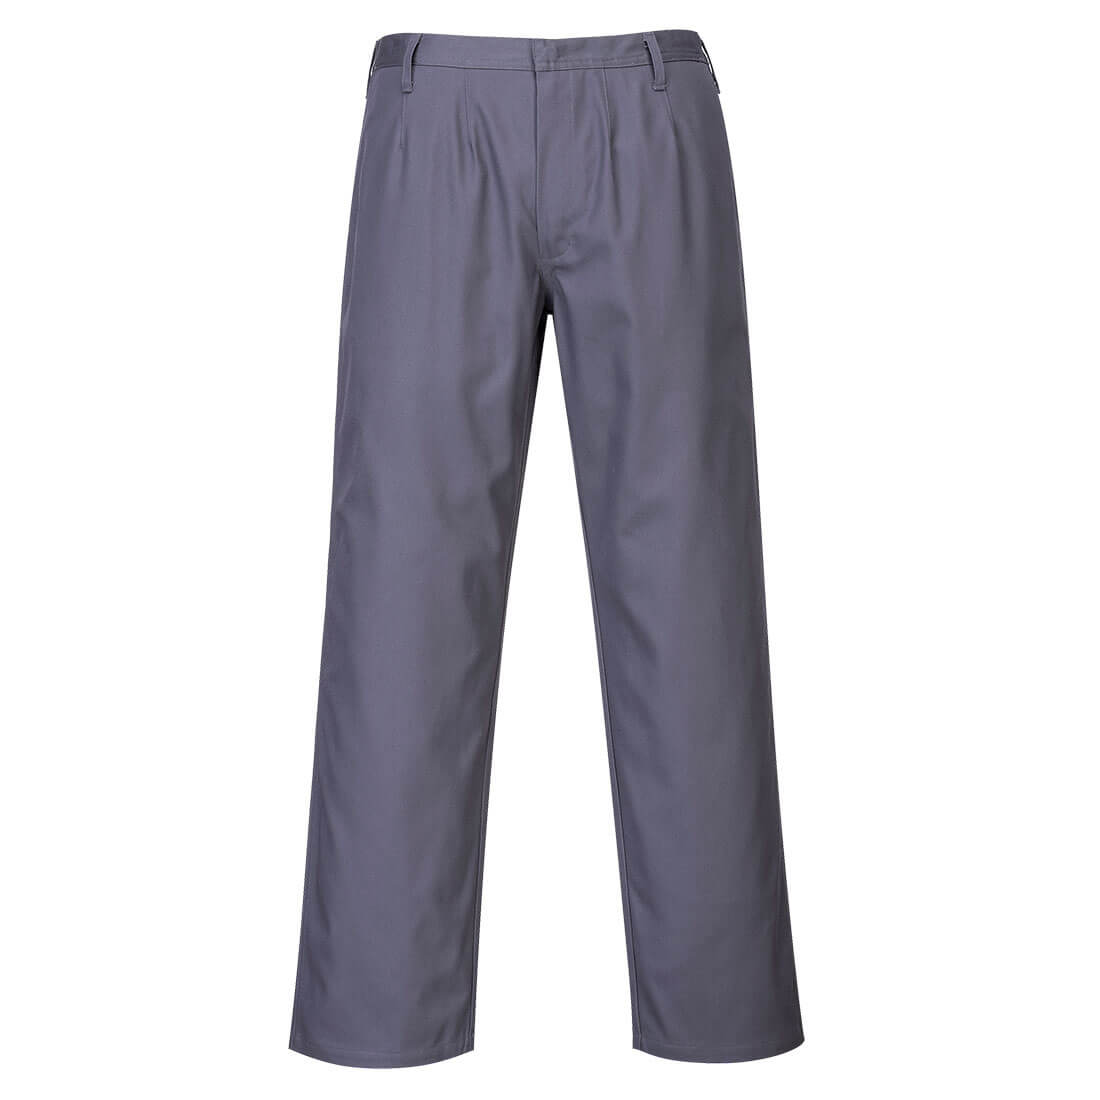 Image of Biz Flame Pro Mens Flame Resistant Trousers Grey 2XL 32""